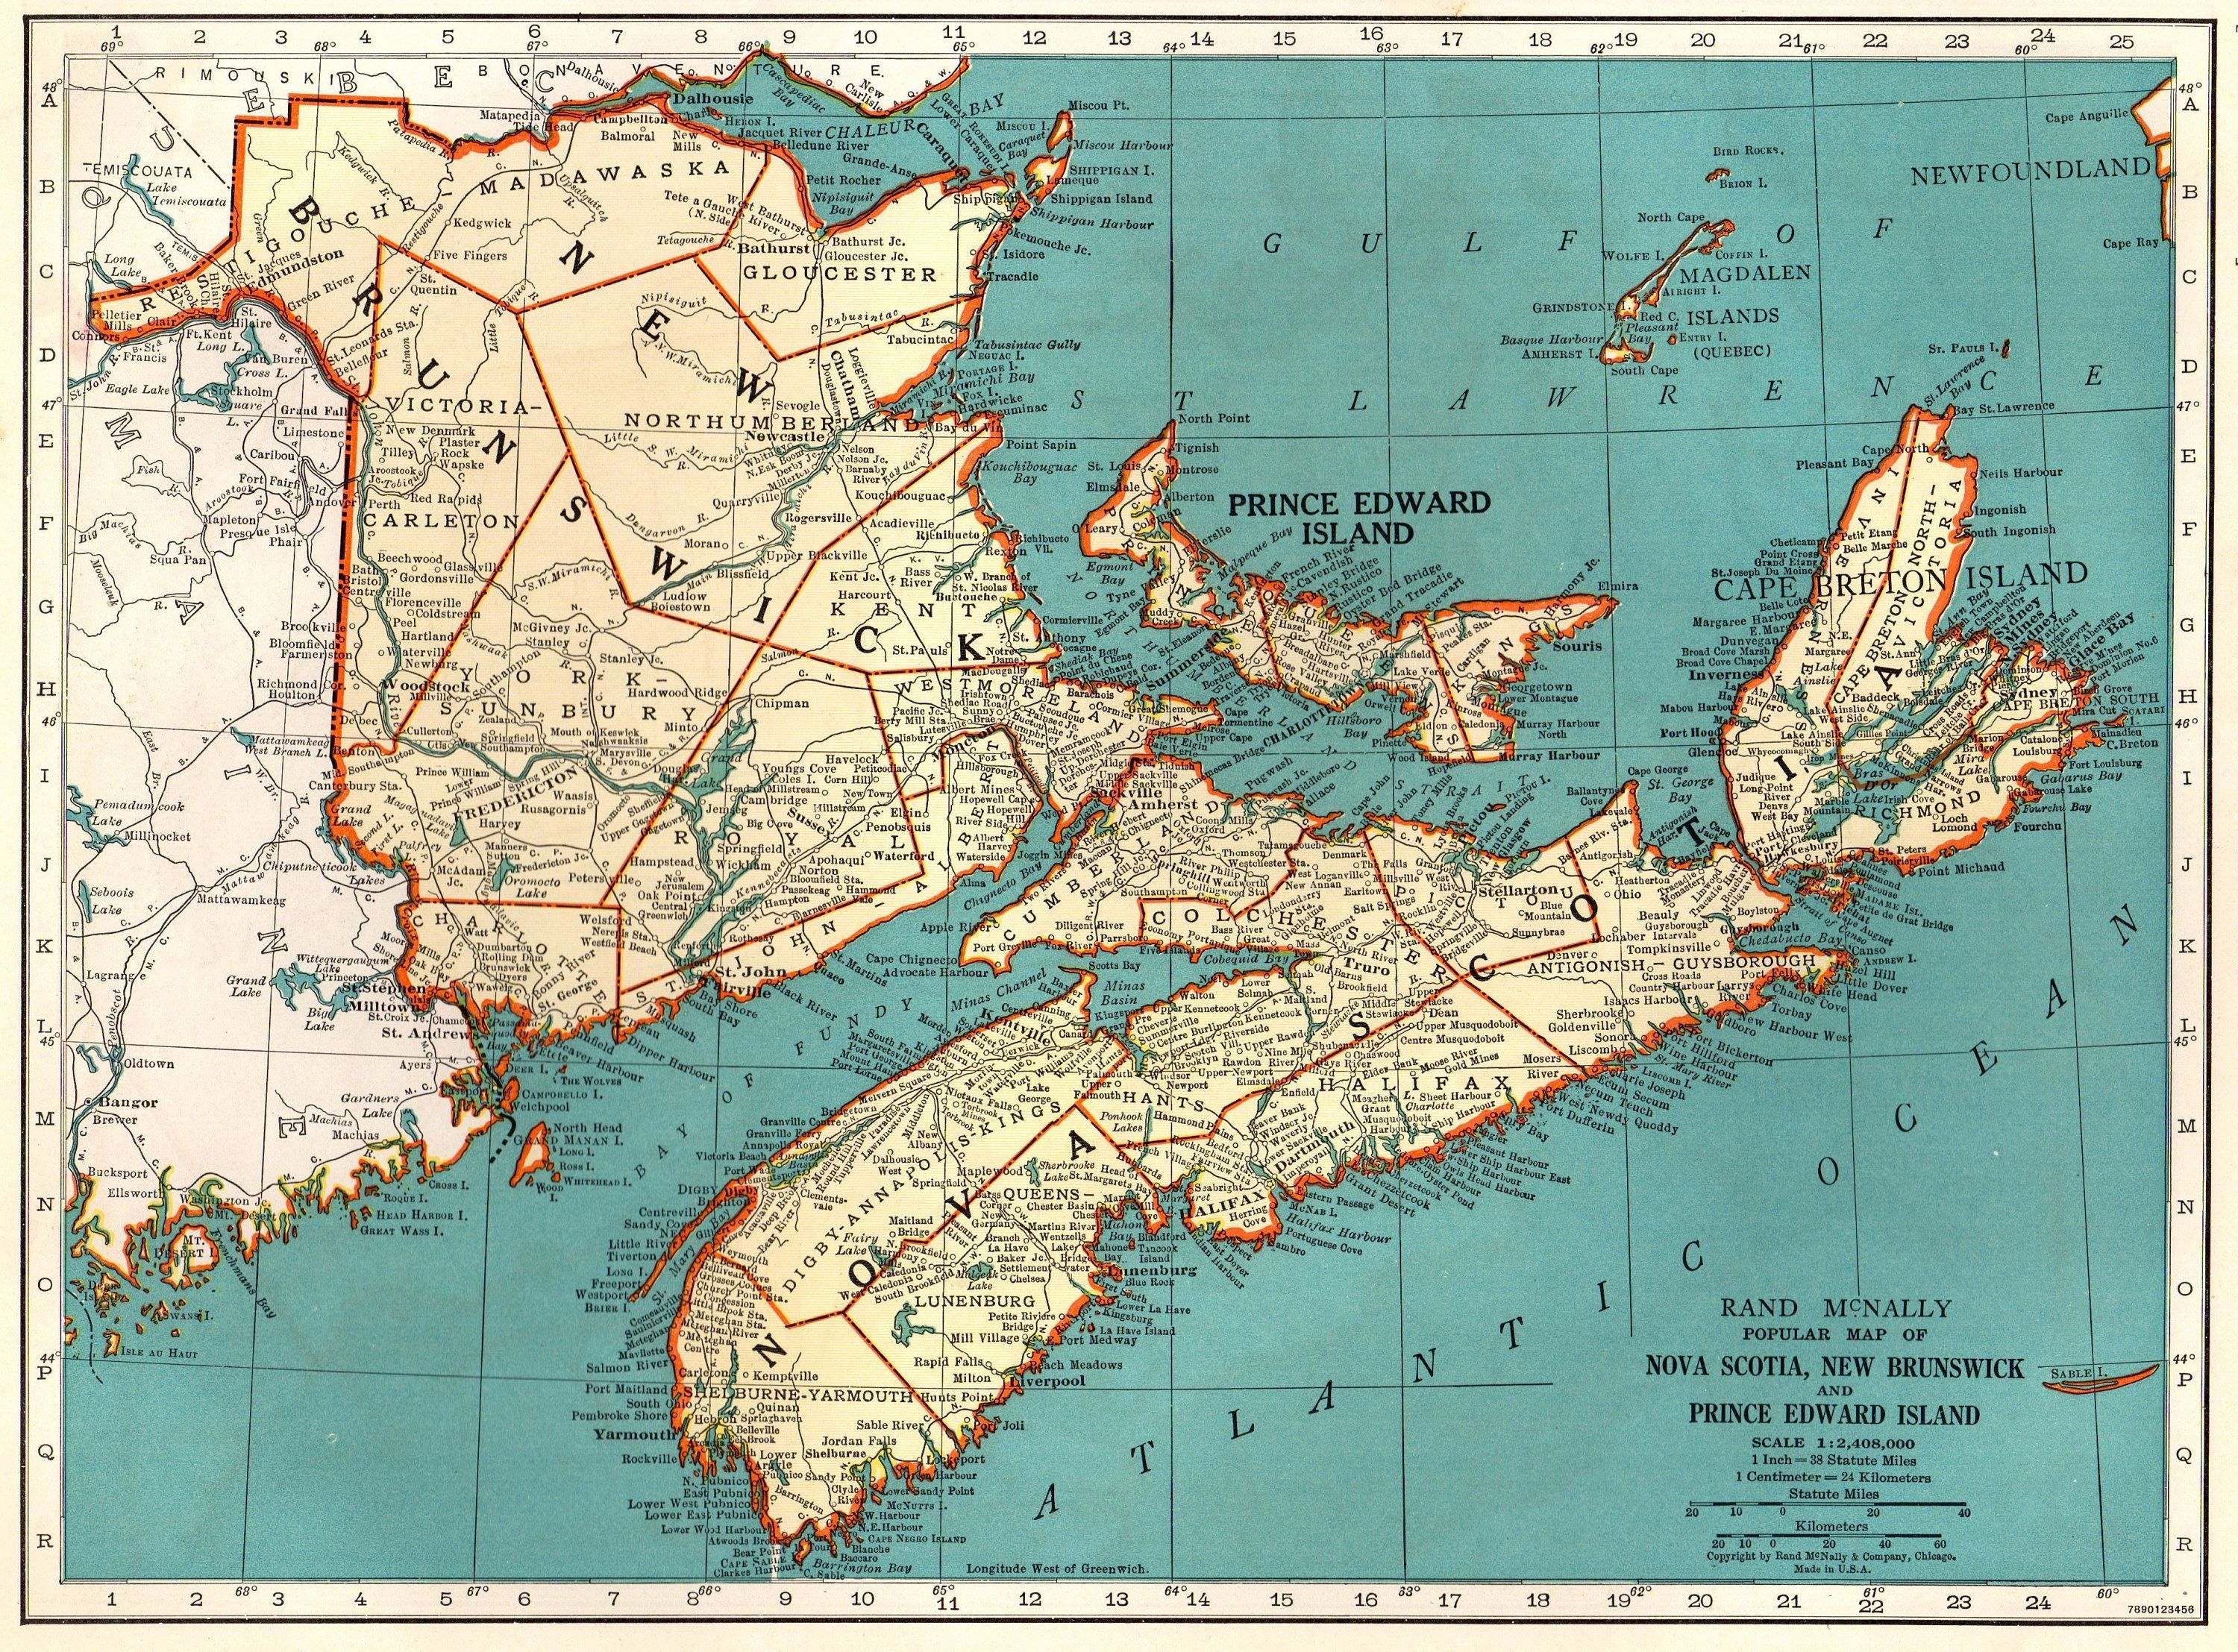 Maritime Canada Map 1943 Vintage NOVA SCOTIA Map Antique Maritime Canada Map Cape